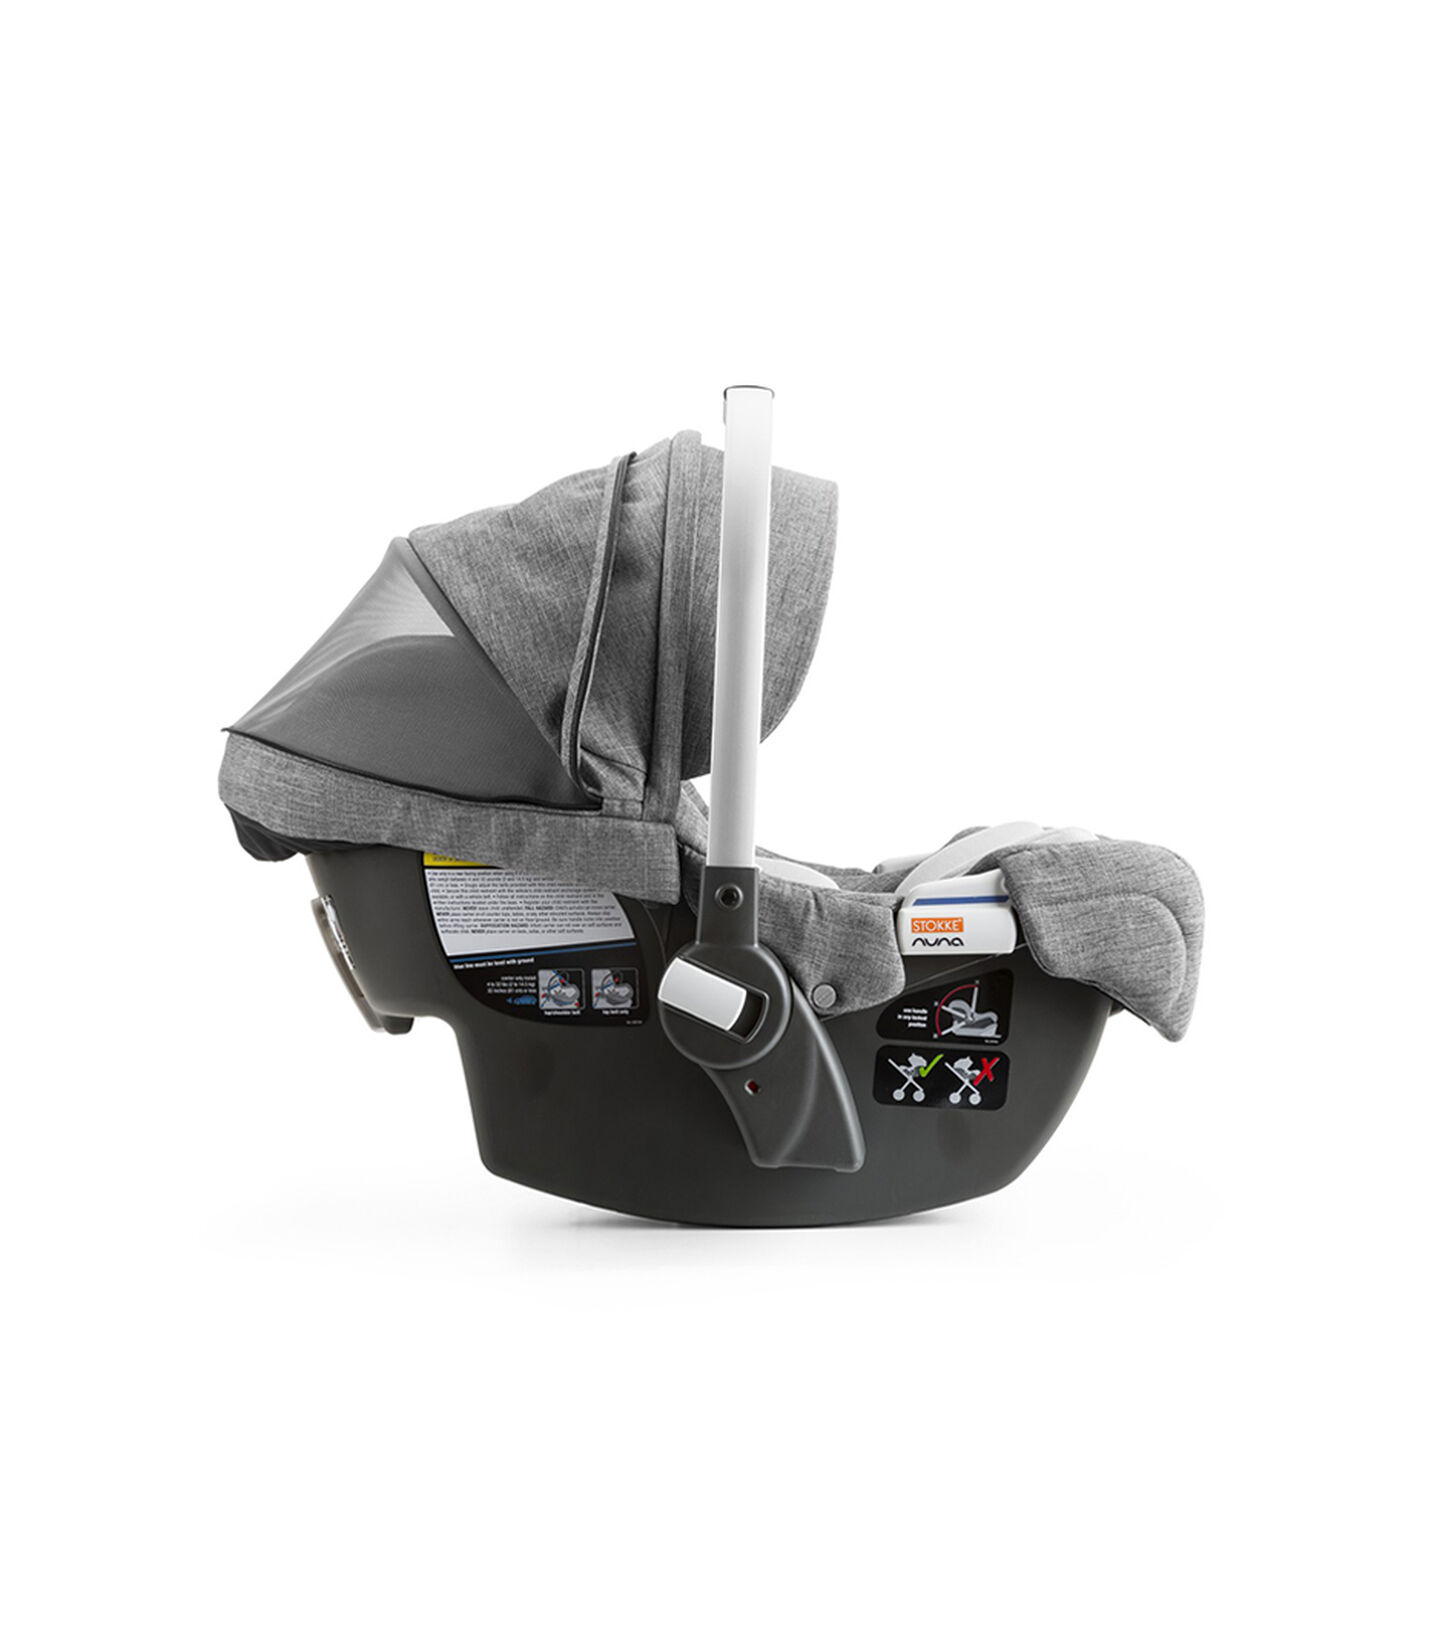 StokkeR PIPATM By NunaR Car Seat Black Melange Ventlation